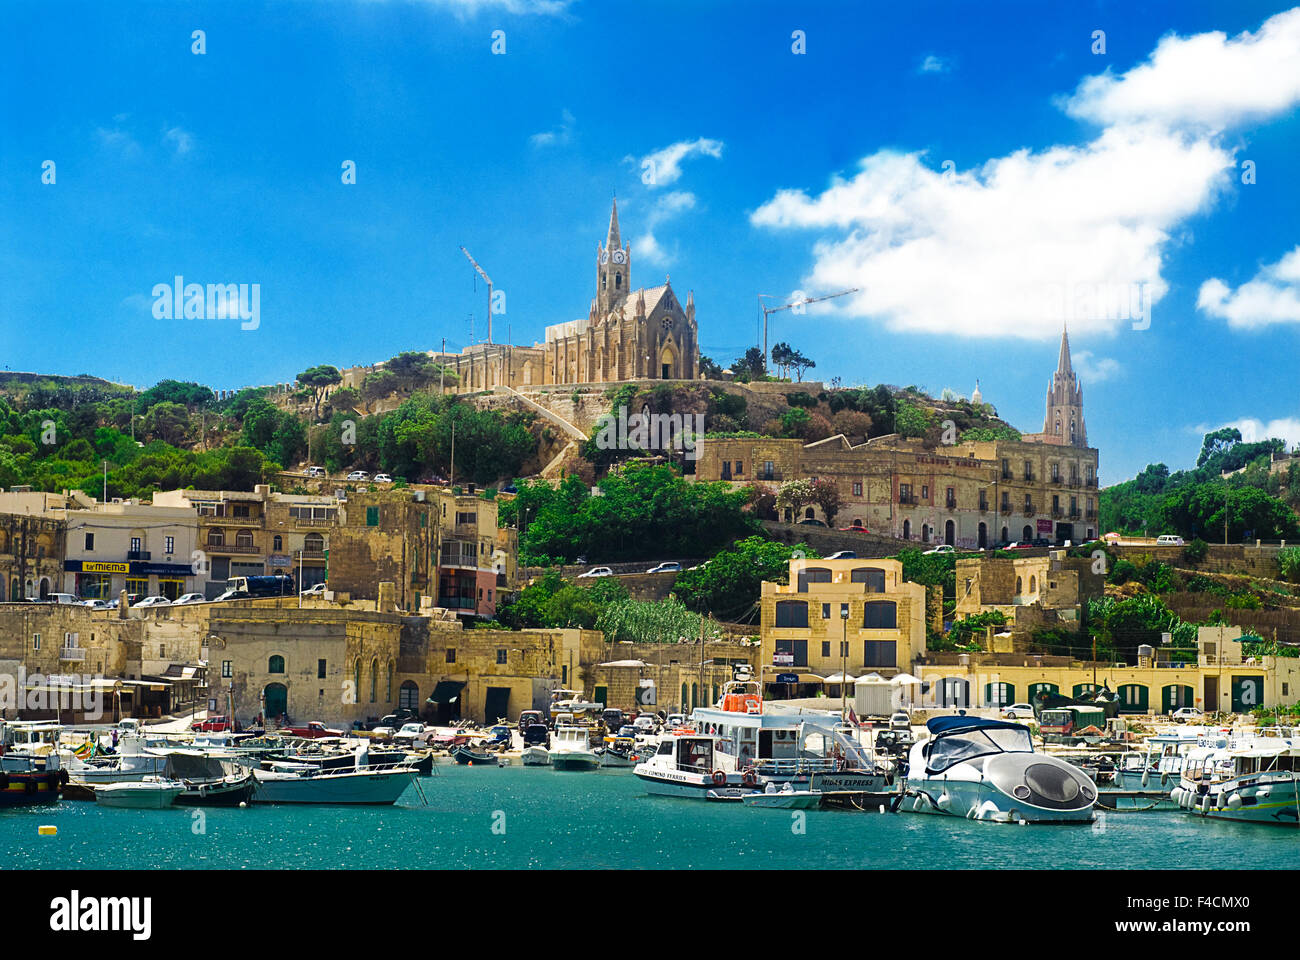 A view of Gozo, one of the Maltese Islands. - Stock Image